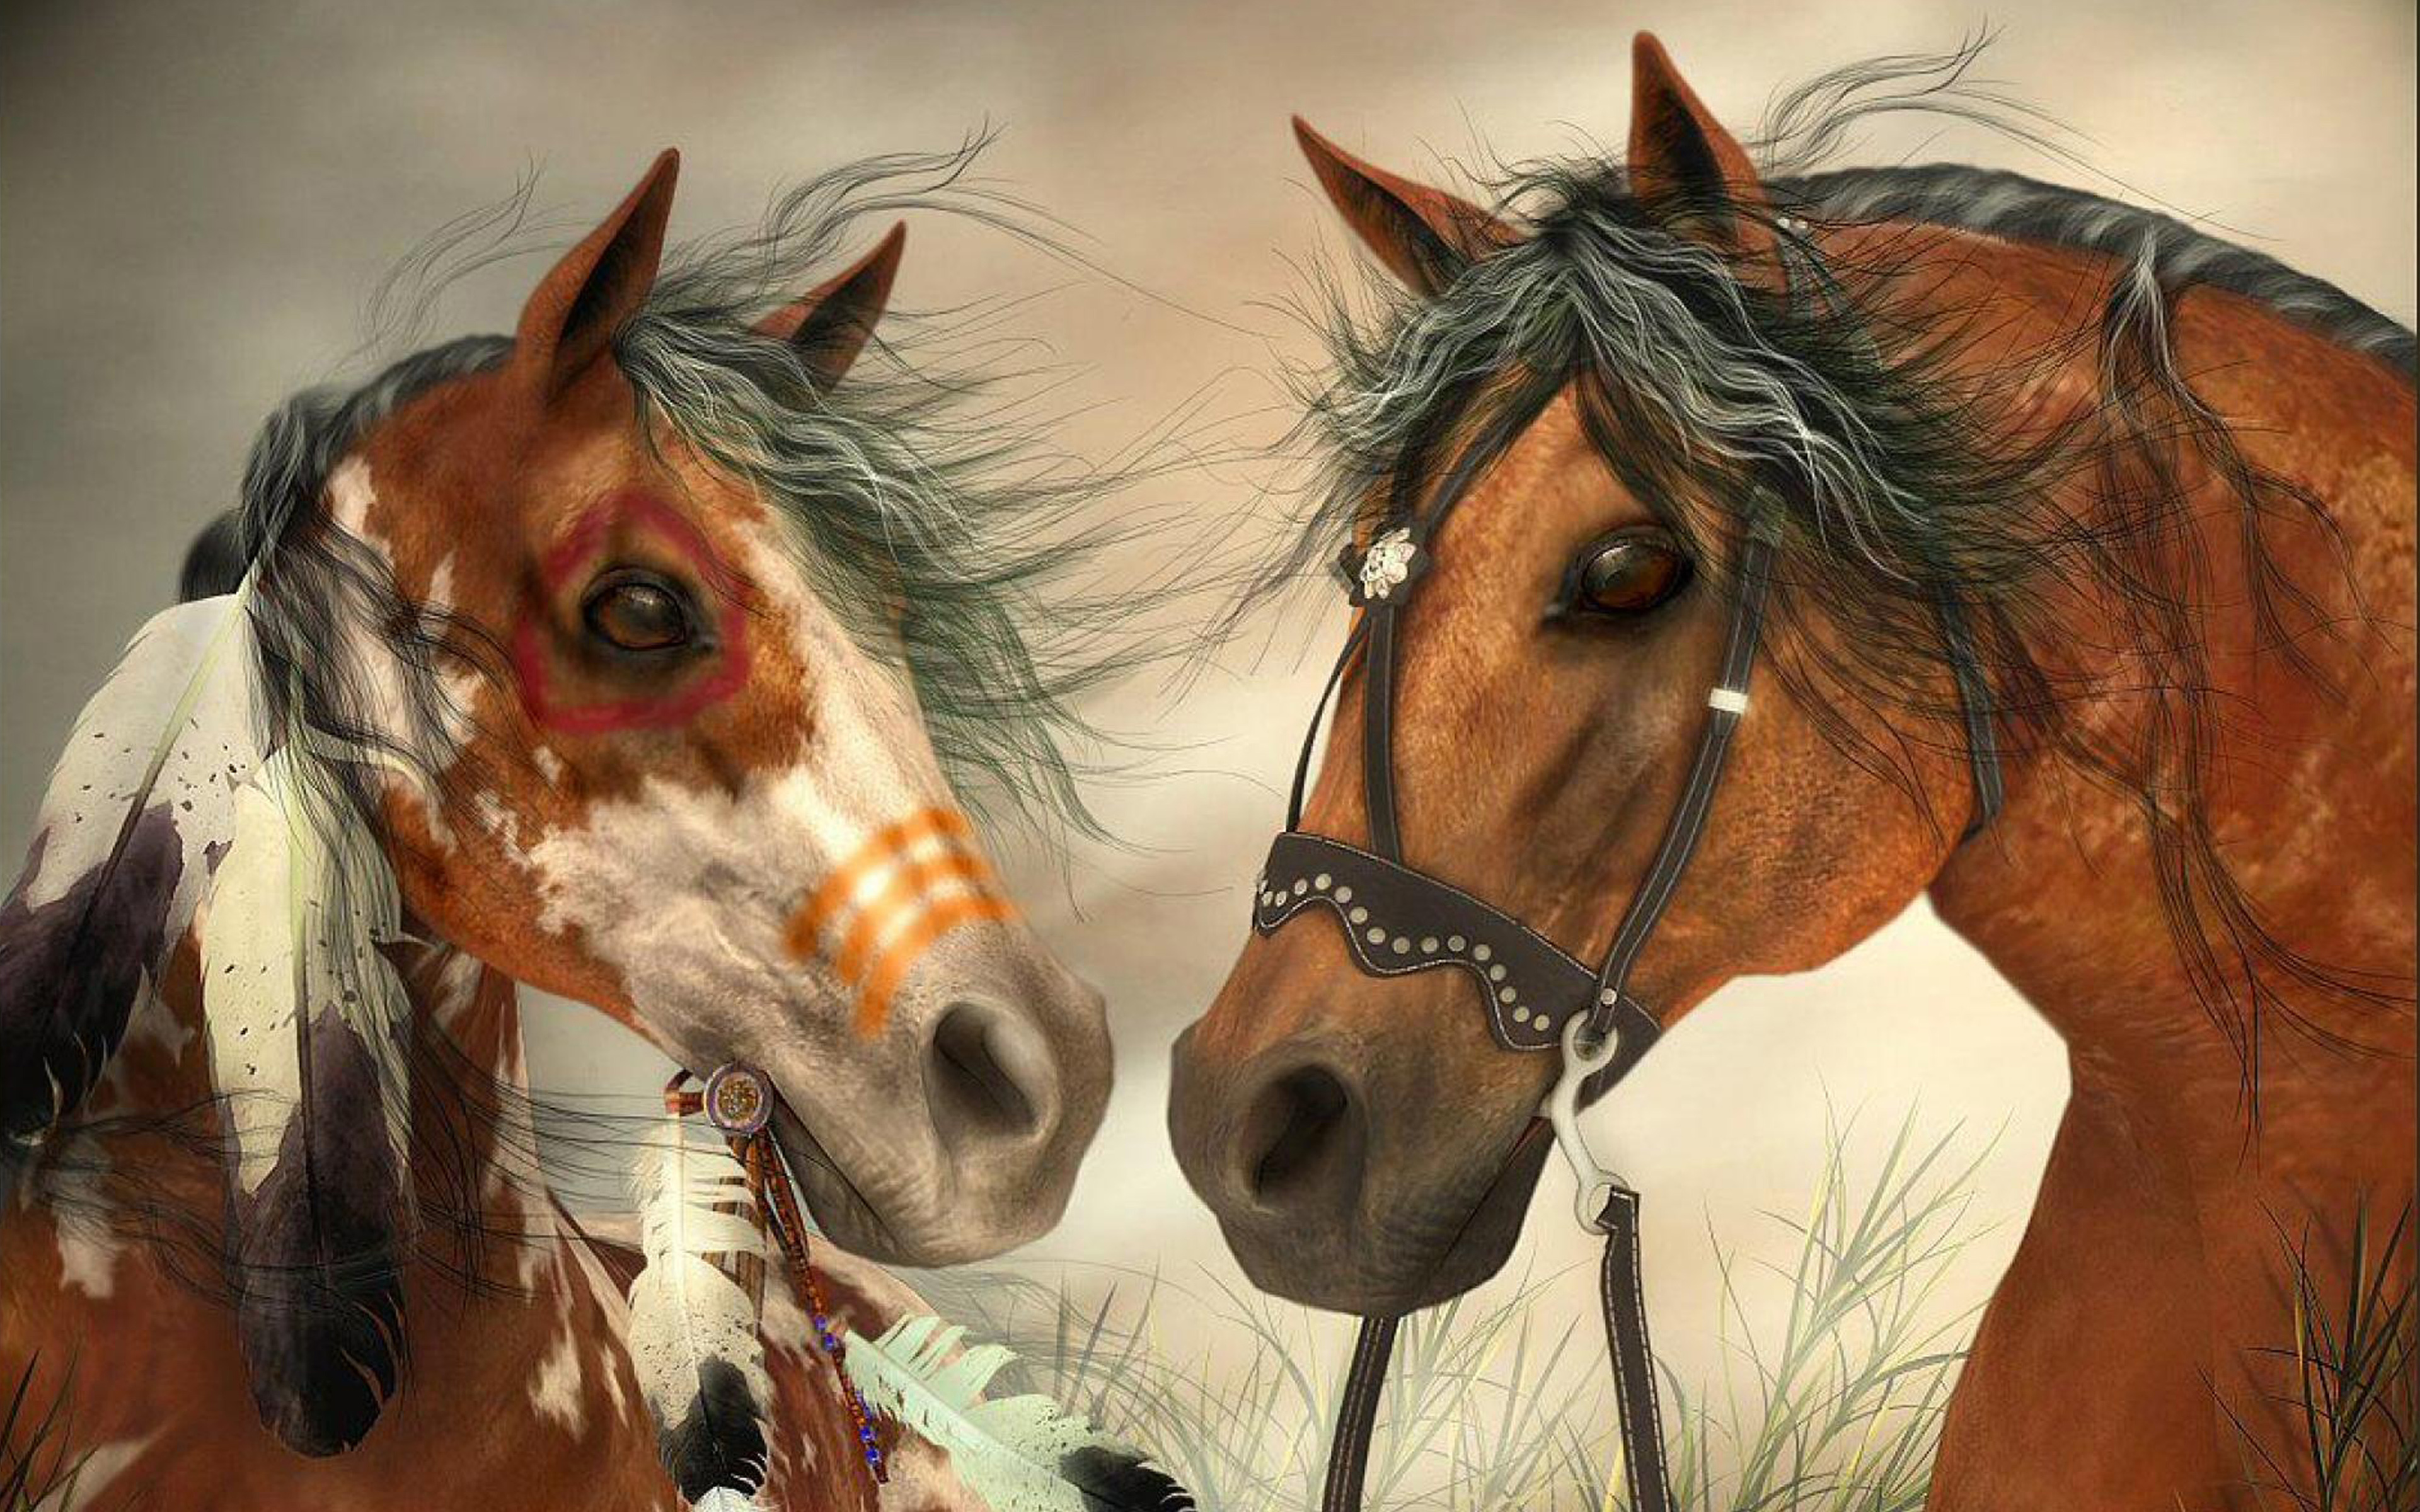 Free 3d Dinosaur Wallpaper War Horse Indians And War Horse Of The Cowboys Hd